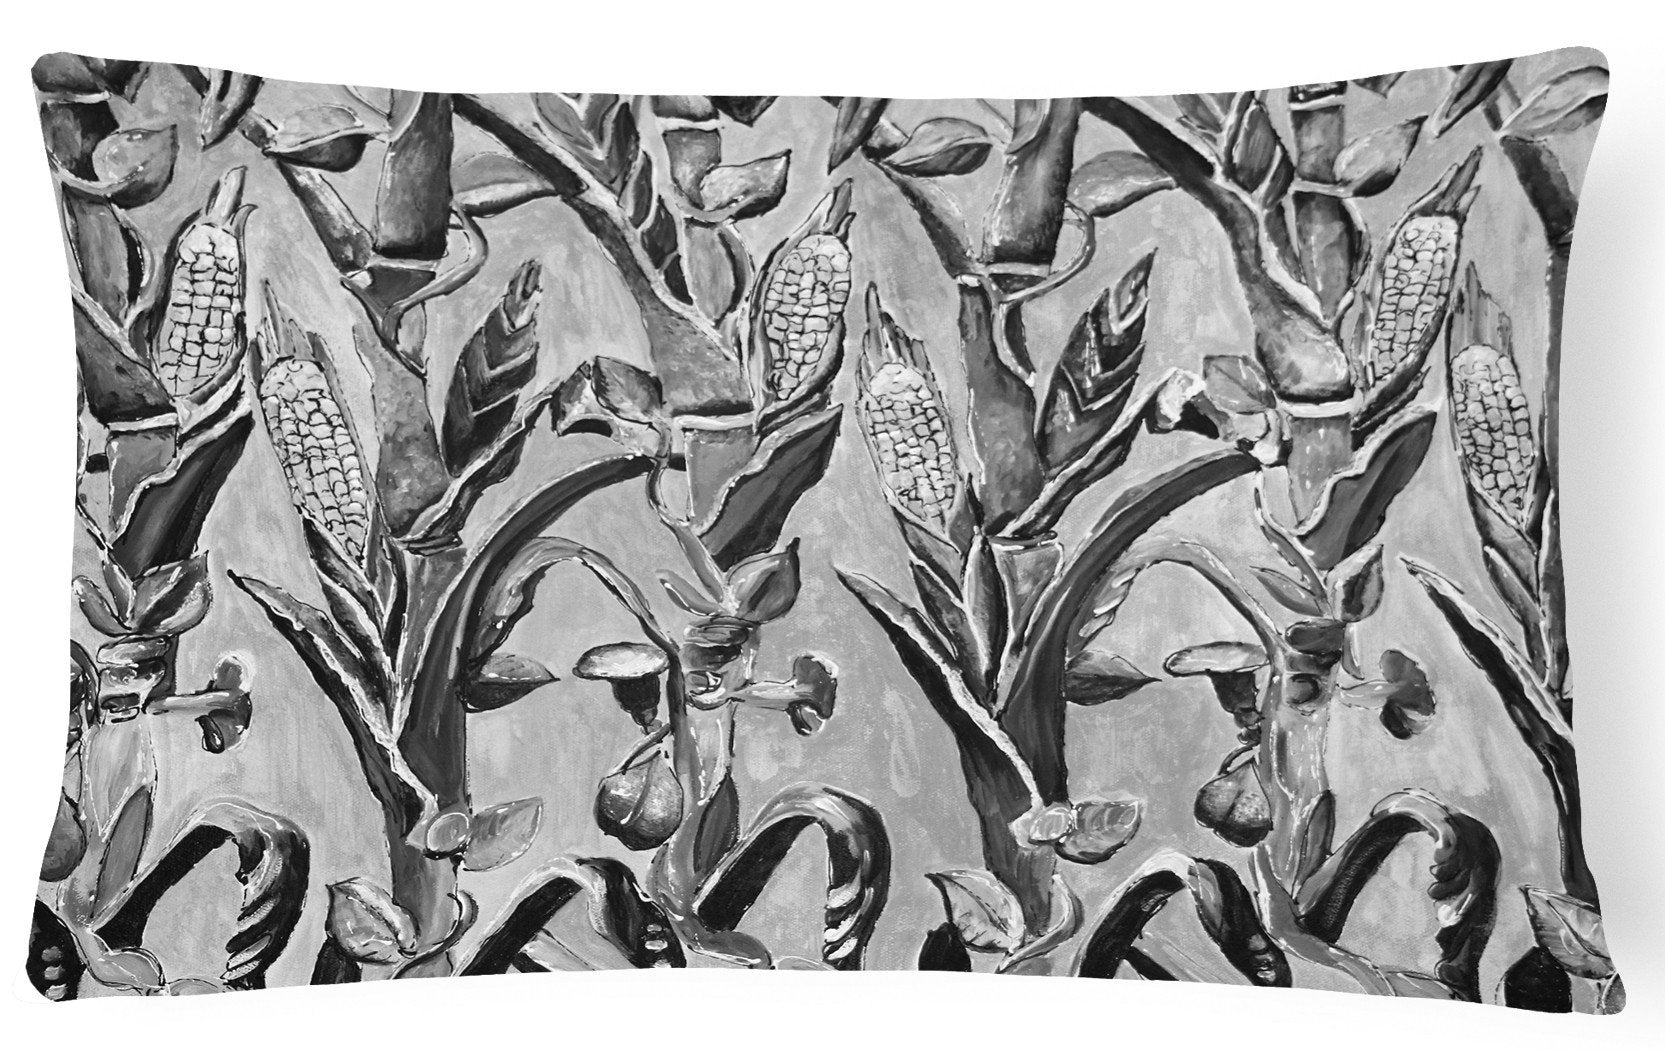 Corn Ironwork Fence Canvas Fabric Decorative Pillow 8929PW1216 by Caroline's Treasures